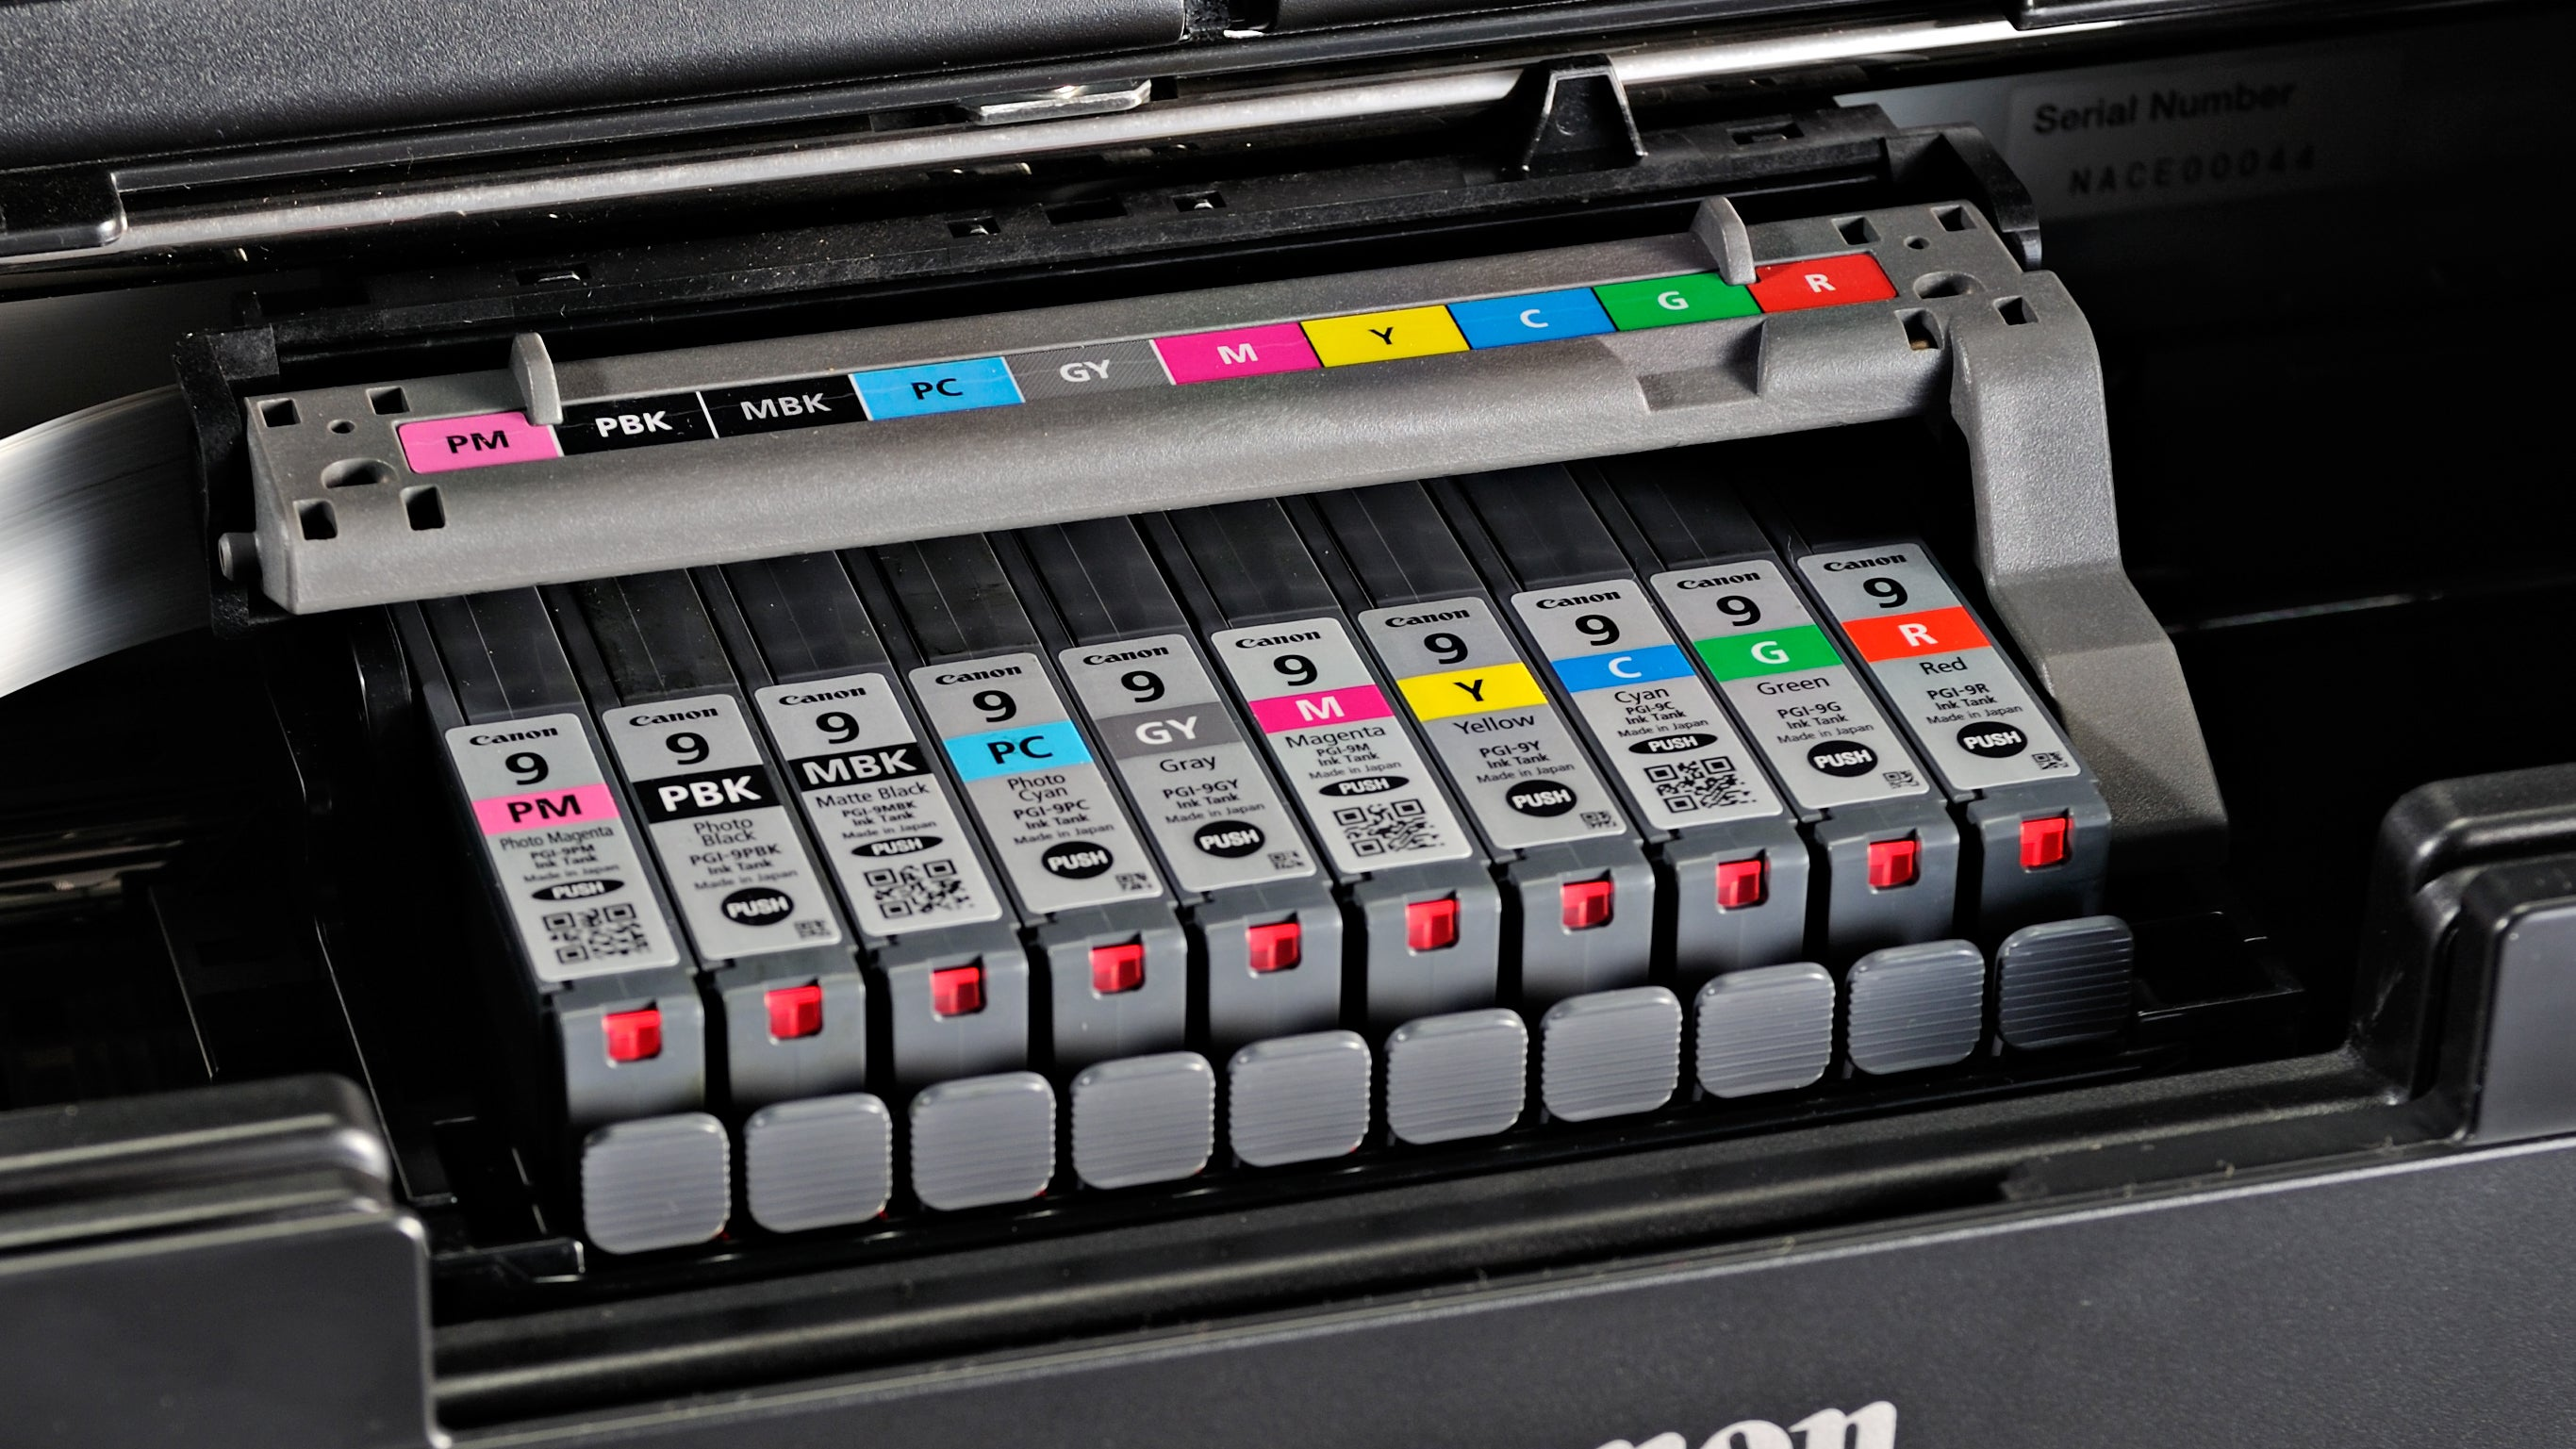 Australian Farmers Bullied Into Buying $80,000 Worth Of Ink Cartridges By Unrelenting Cold Callers